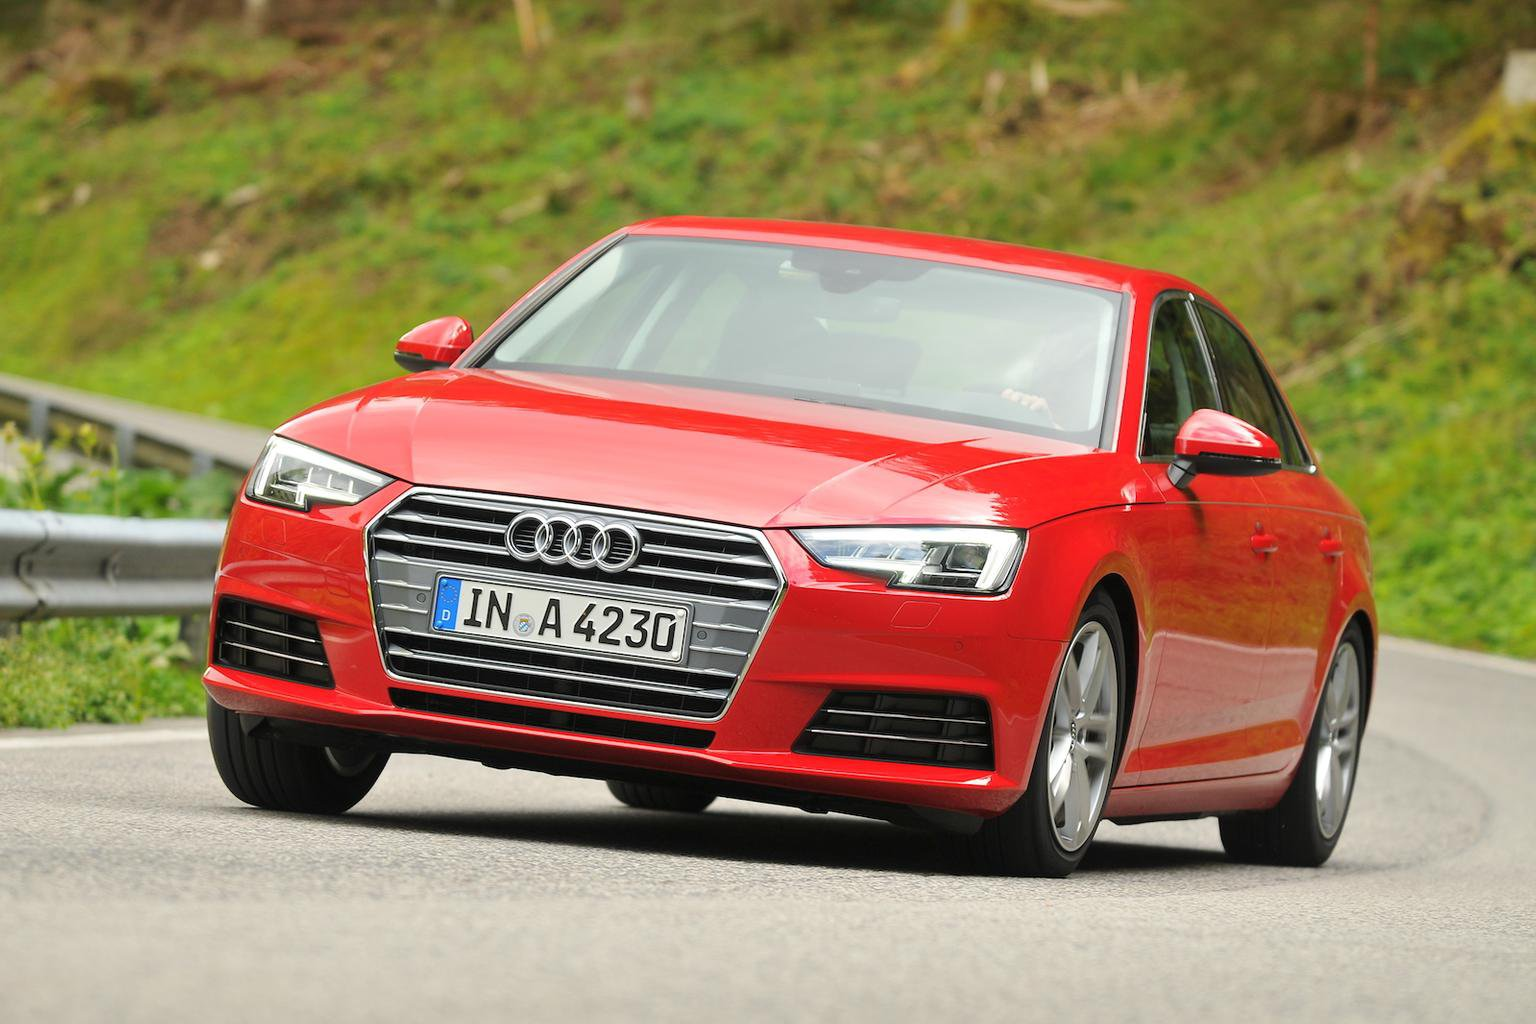 2015 Audi A4 2.0 TDI 190 Ultra review